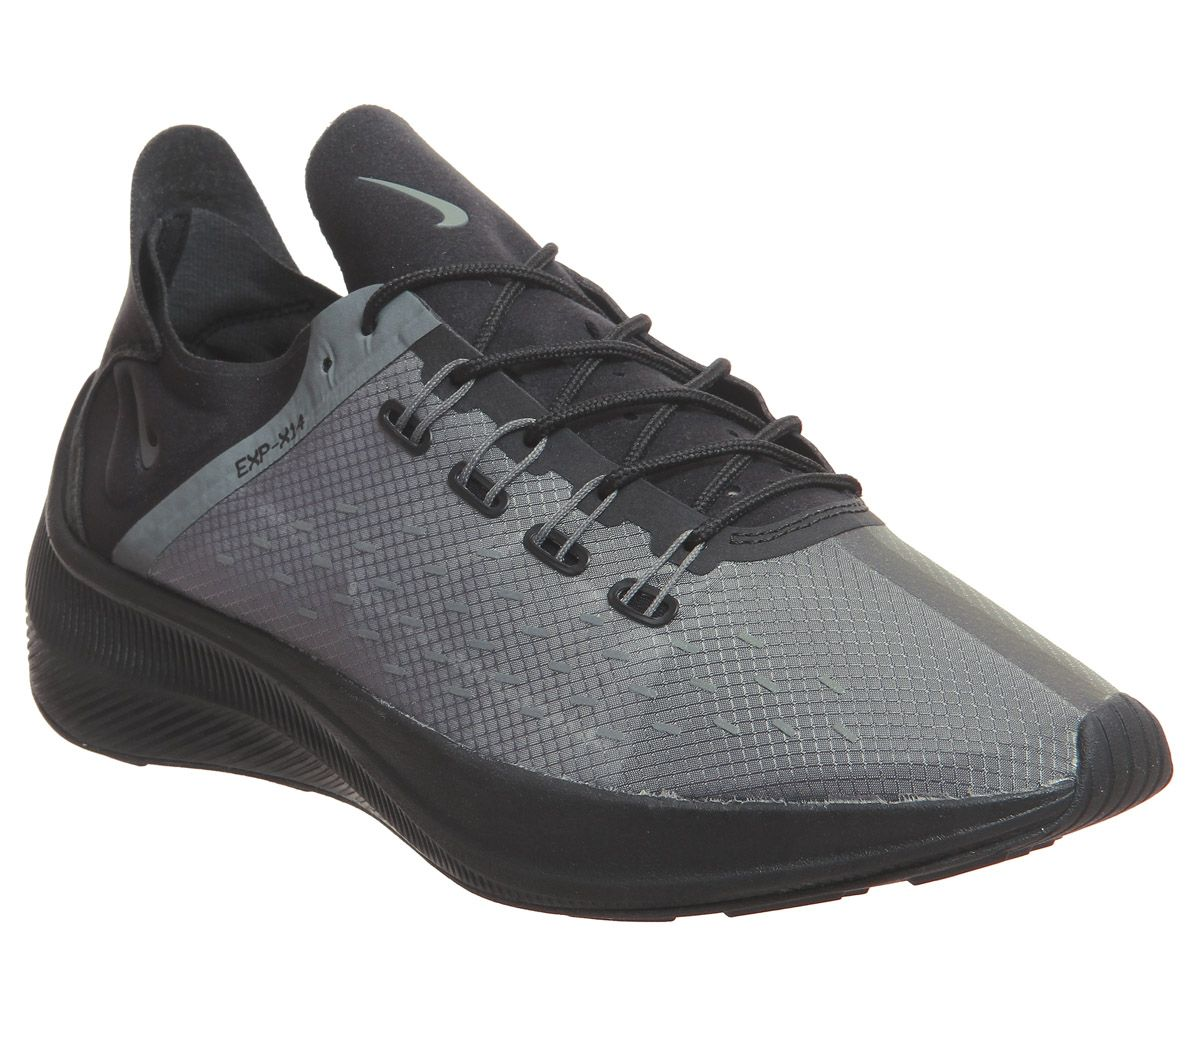 3a36a73e0 Nike Nike Exp- X14 Racer Trainers Black Dark Grey Wolf Grey - His ...